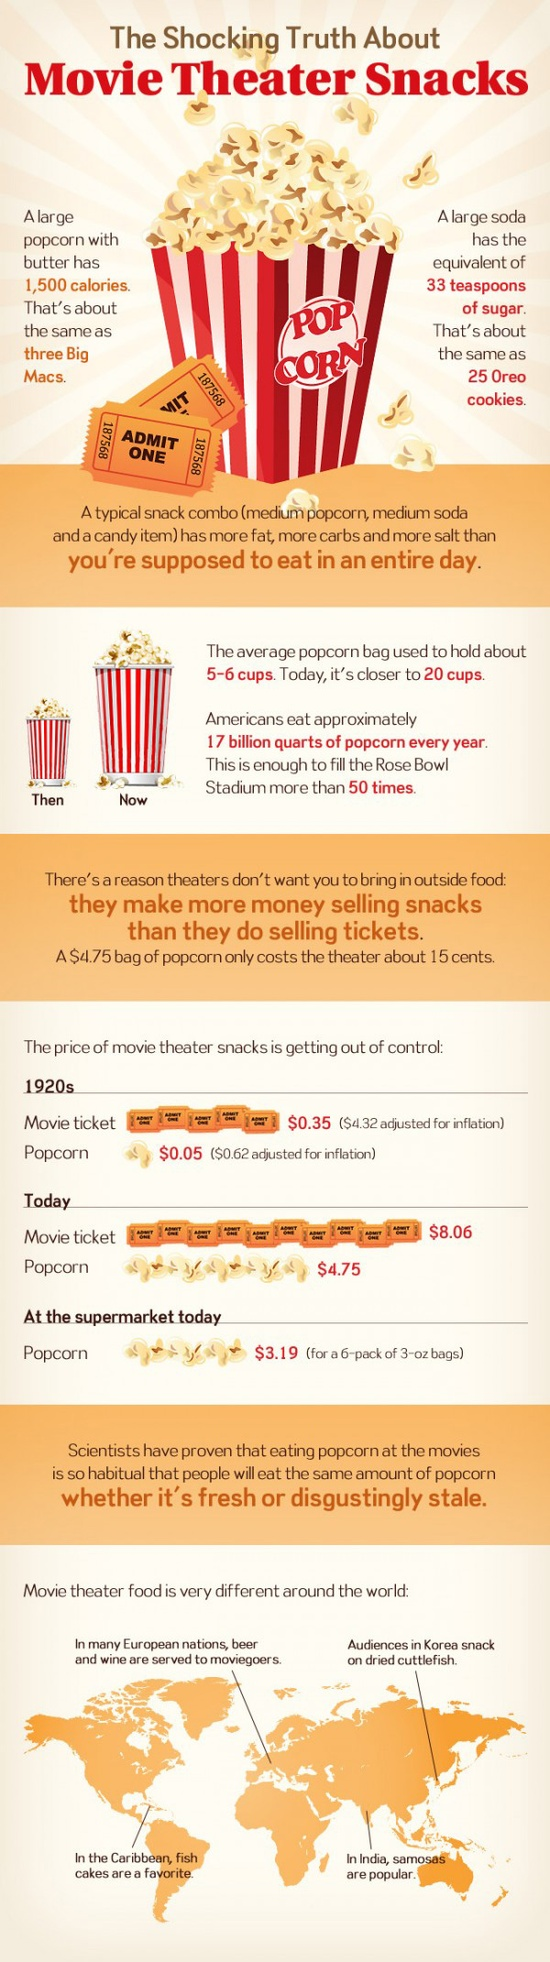 Truth Behind Movie Theater Snacks